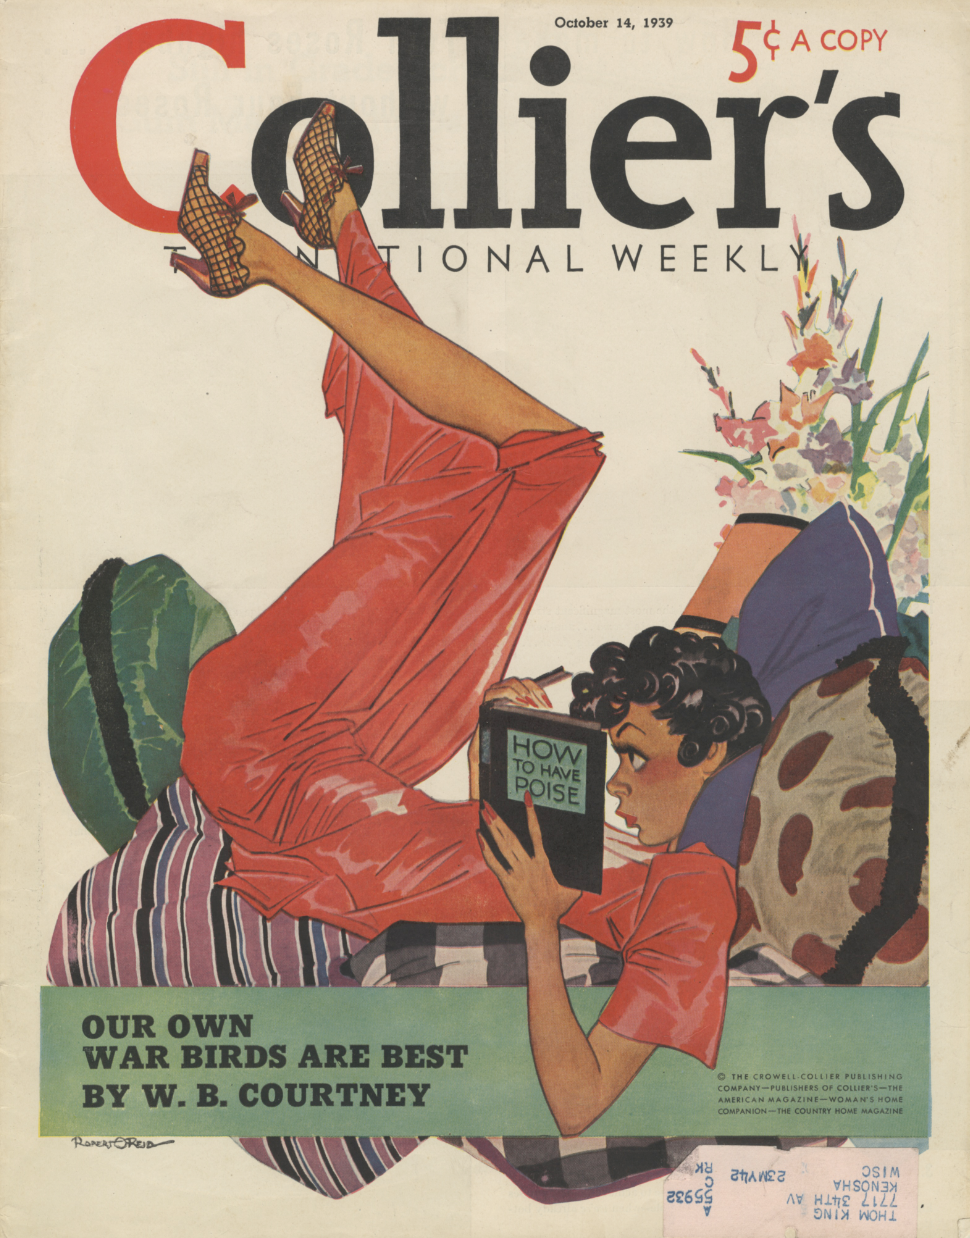 In a weekend languor– ooh, maybe another time –a Robert O. Reid Collier's cover girl, from October 14, 1939. Good luck everybody!